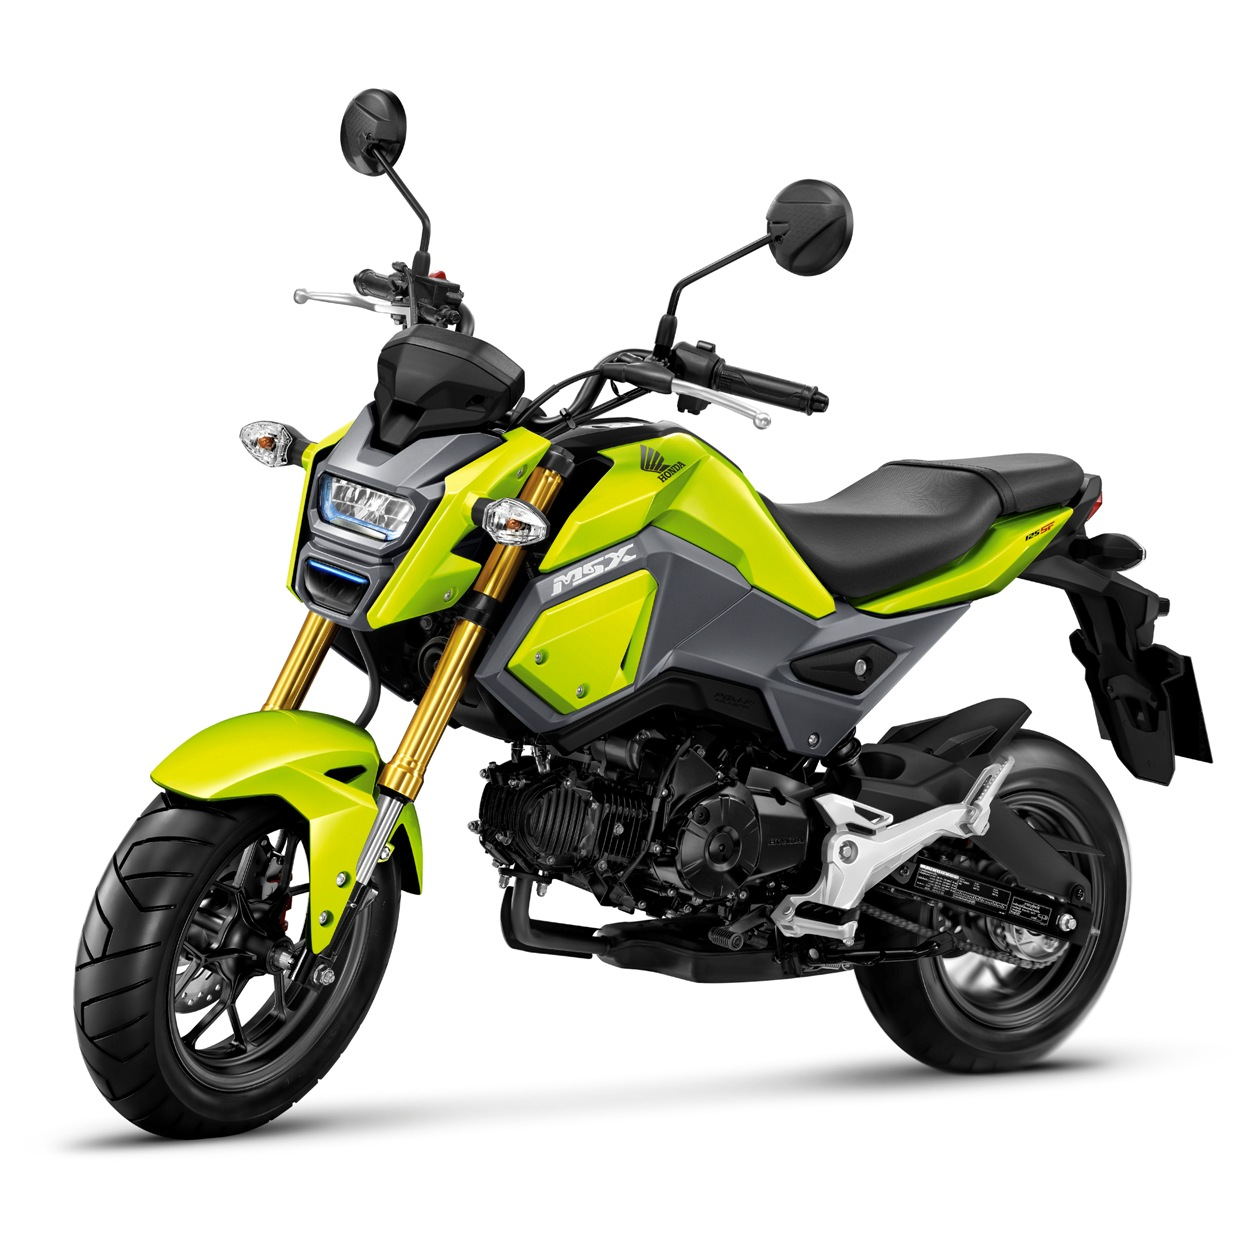 honda grom msx125sf looks cool in this 5-part video story